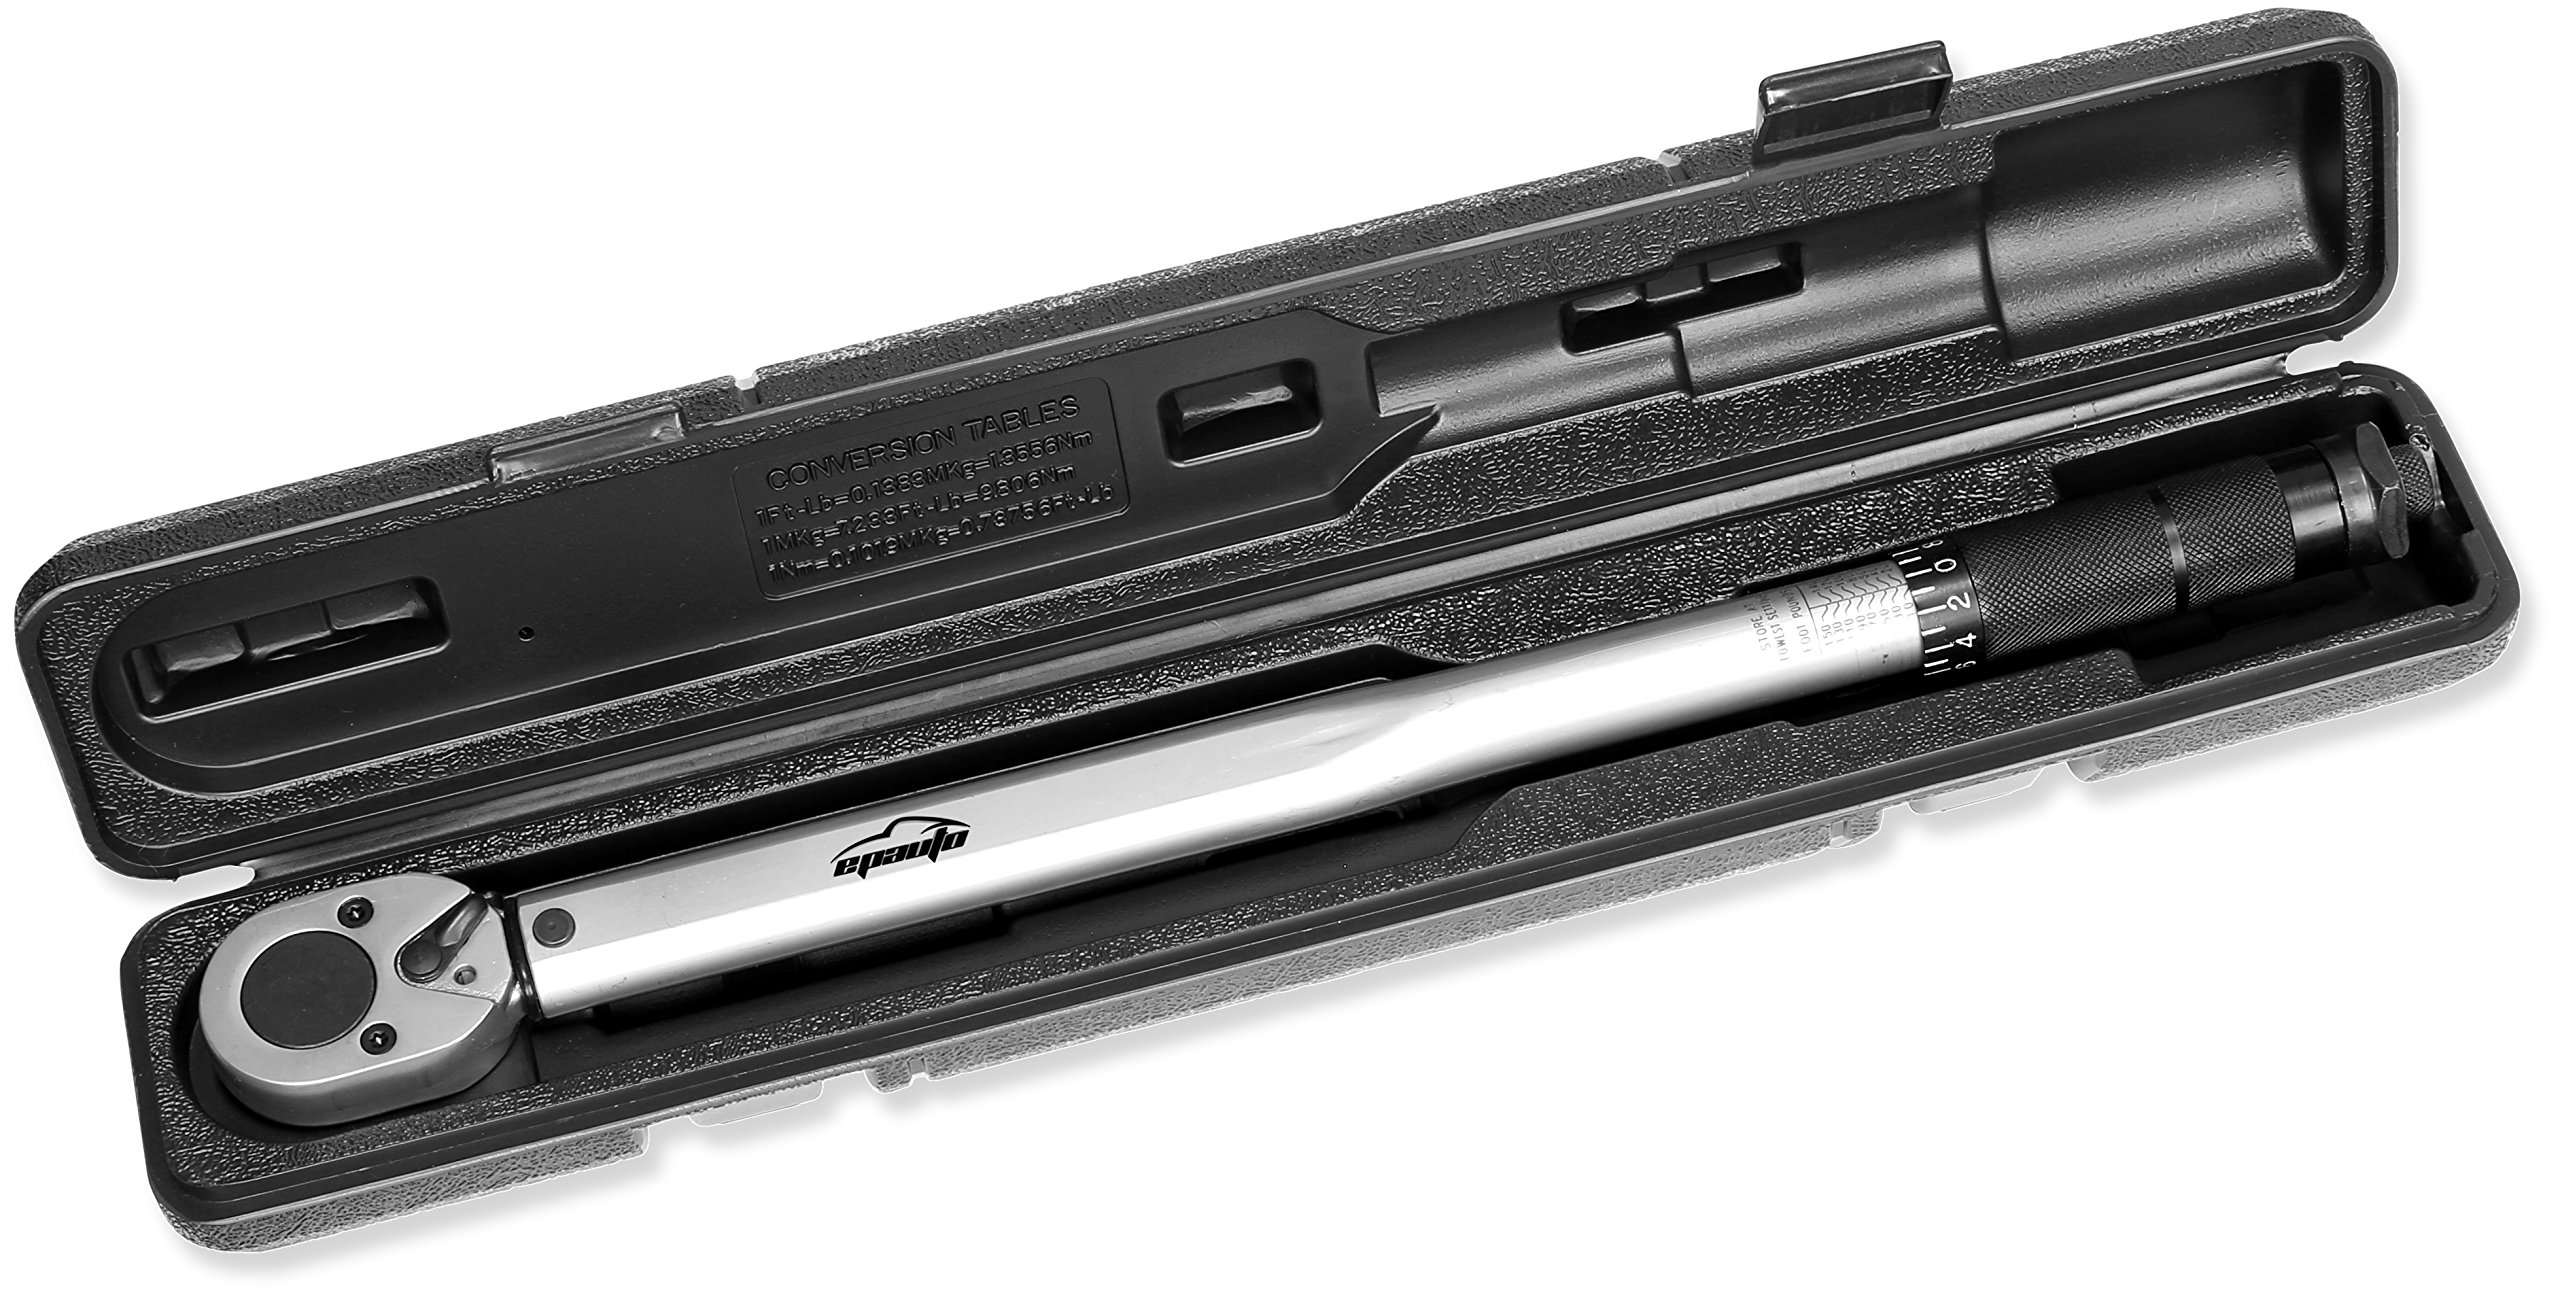 EPAuto 1/2-inch Drive Click Torque Wrench, 10~150 ft./lb., 13.6 ~ 203.5 N/m